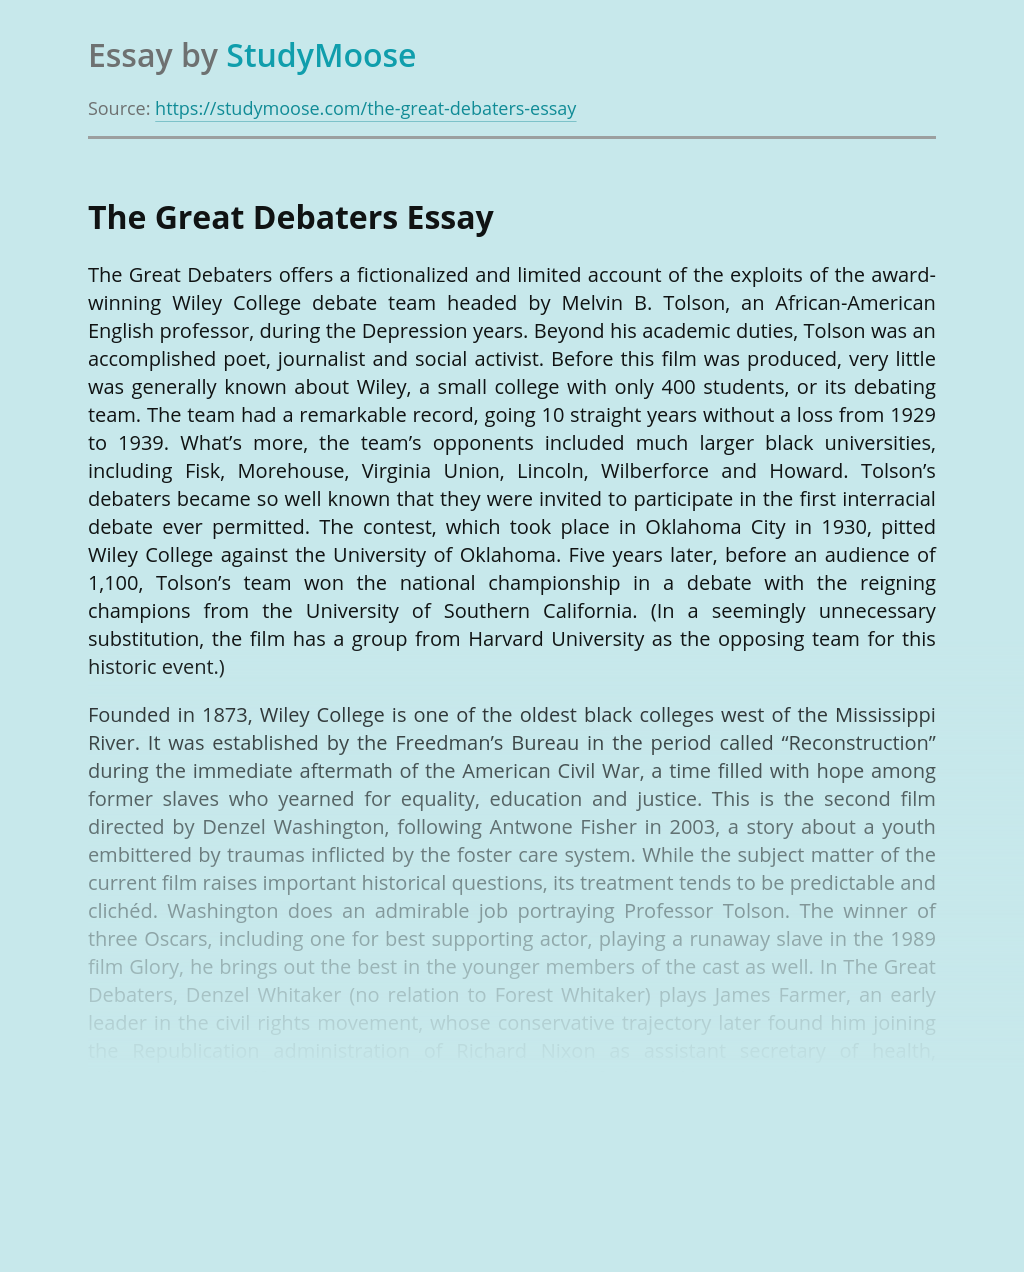 The Great Debaters: Historical Film Review